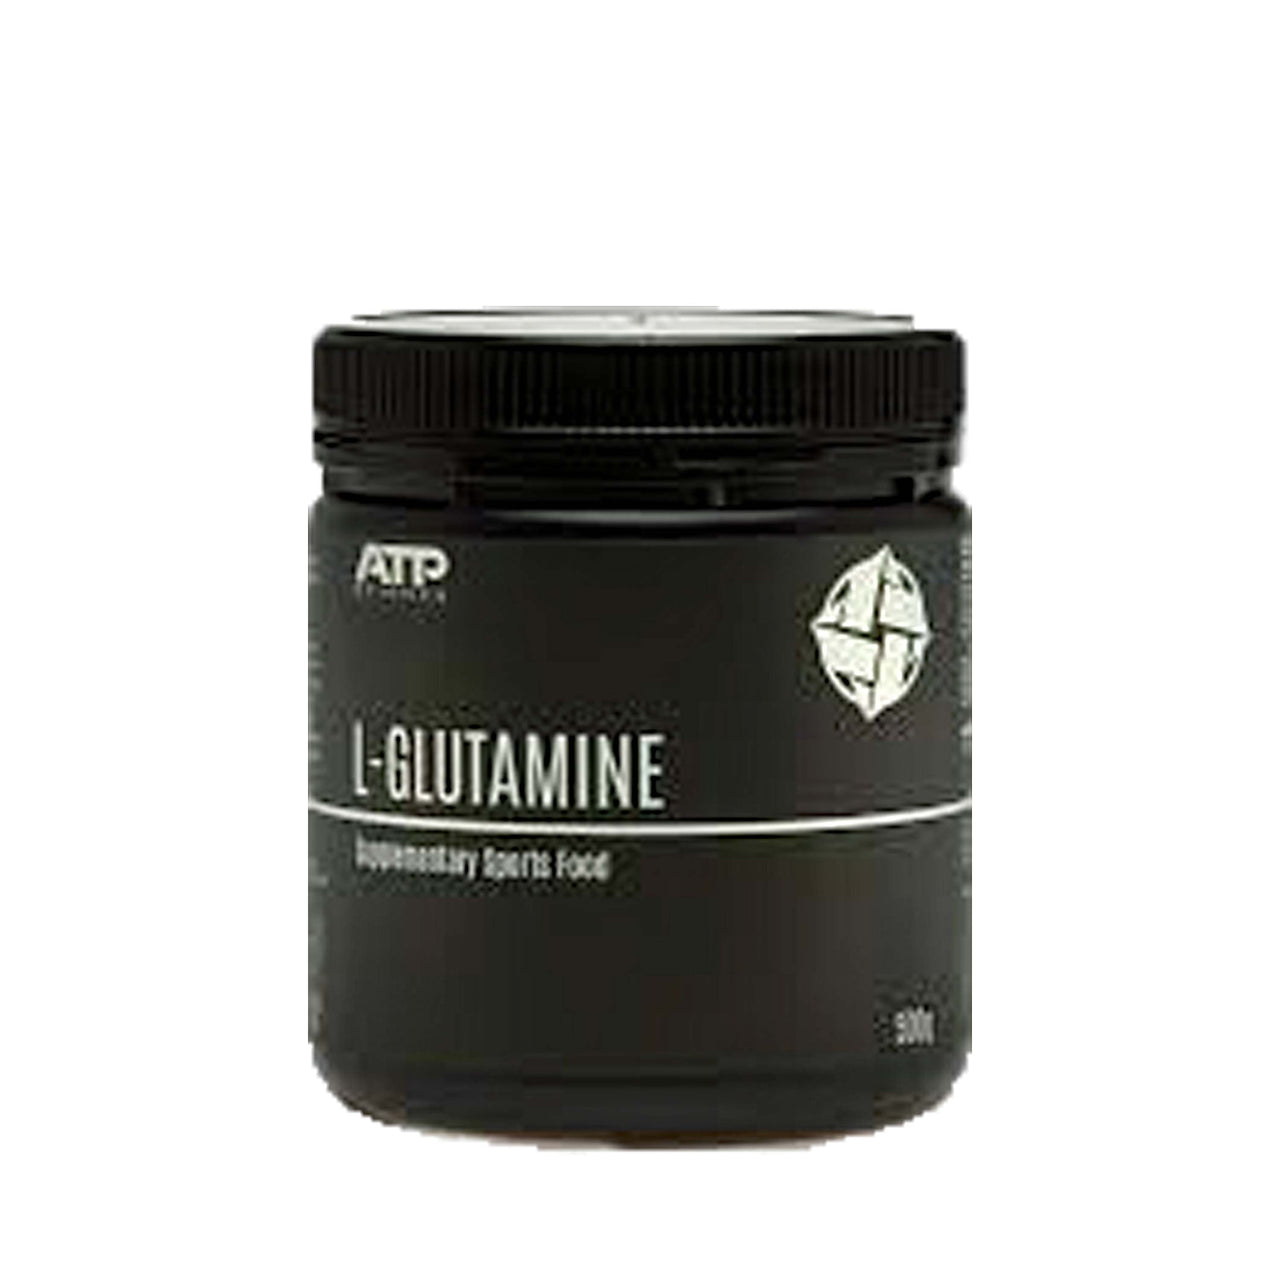 ATP Science L-Glutamine 500g, ATP Science - Nutrition Co Australia